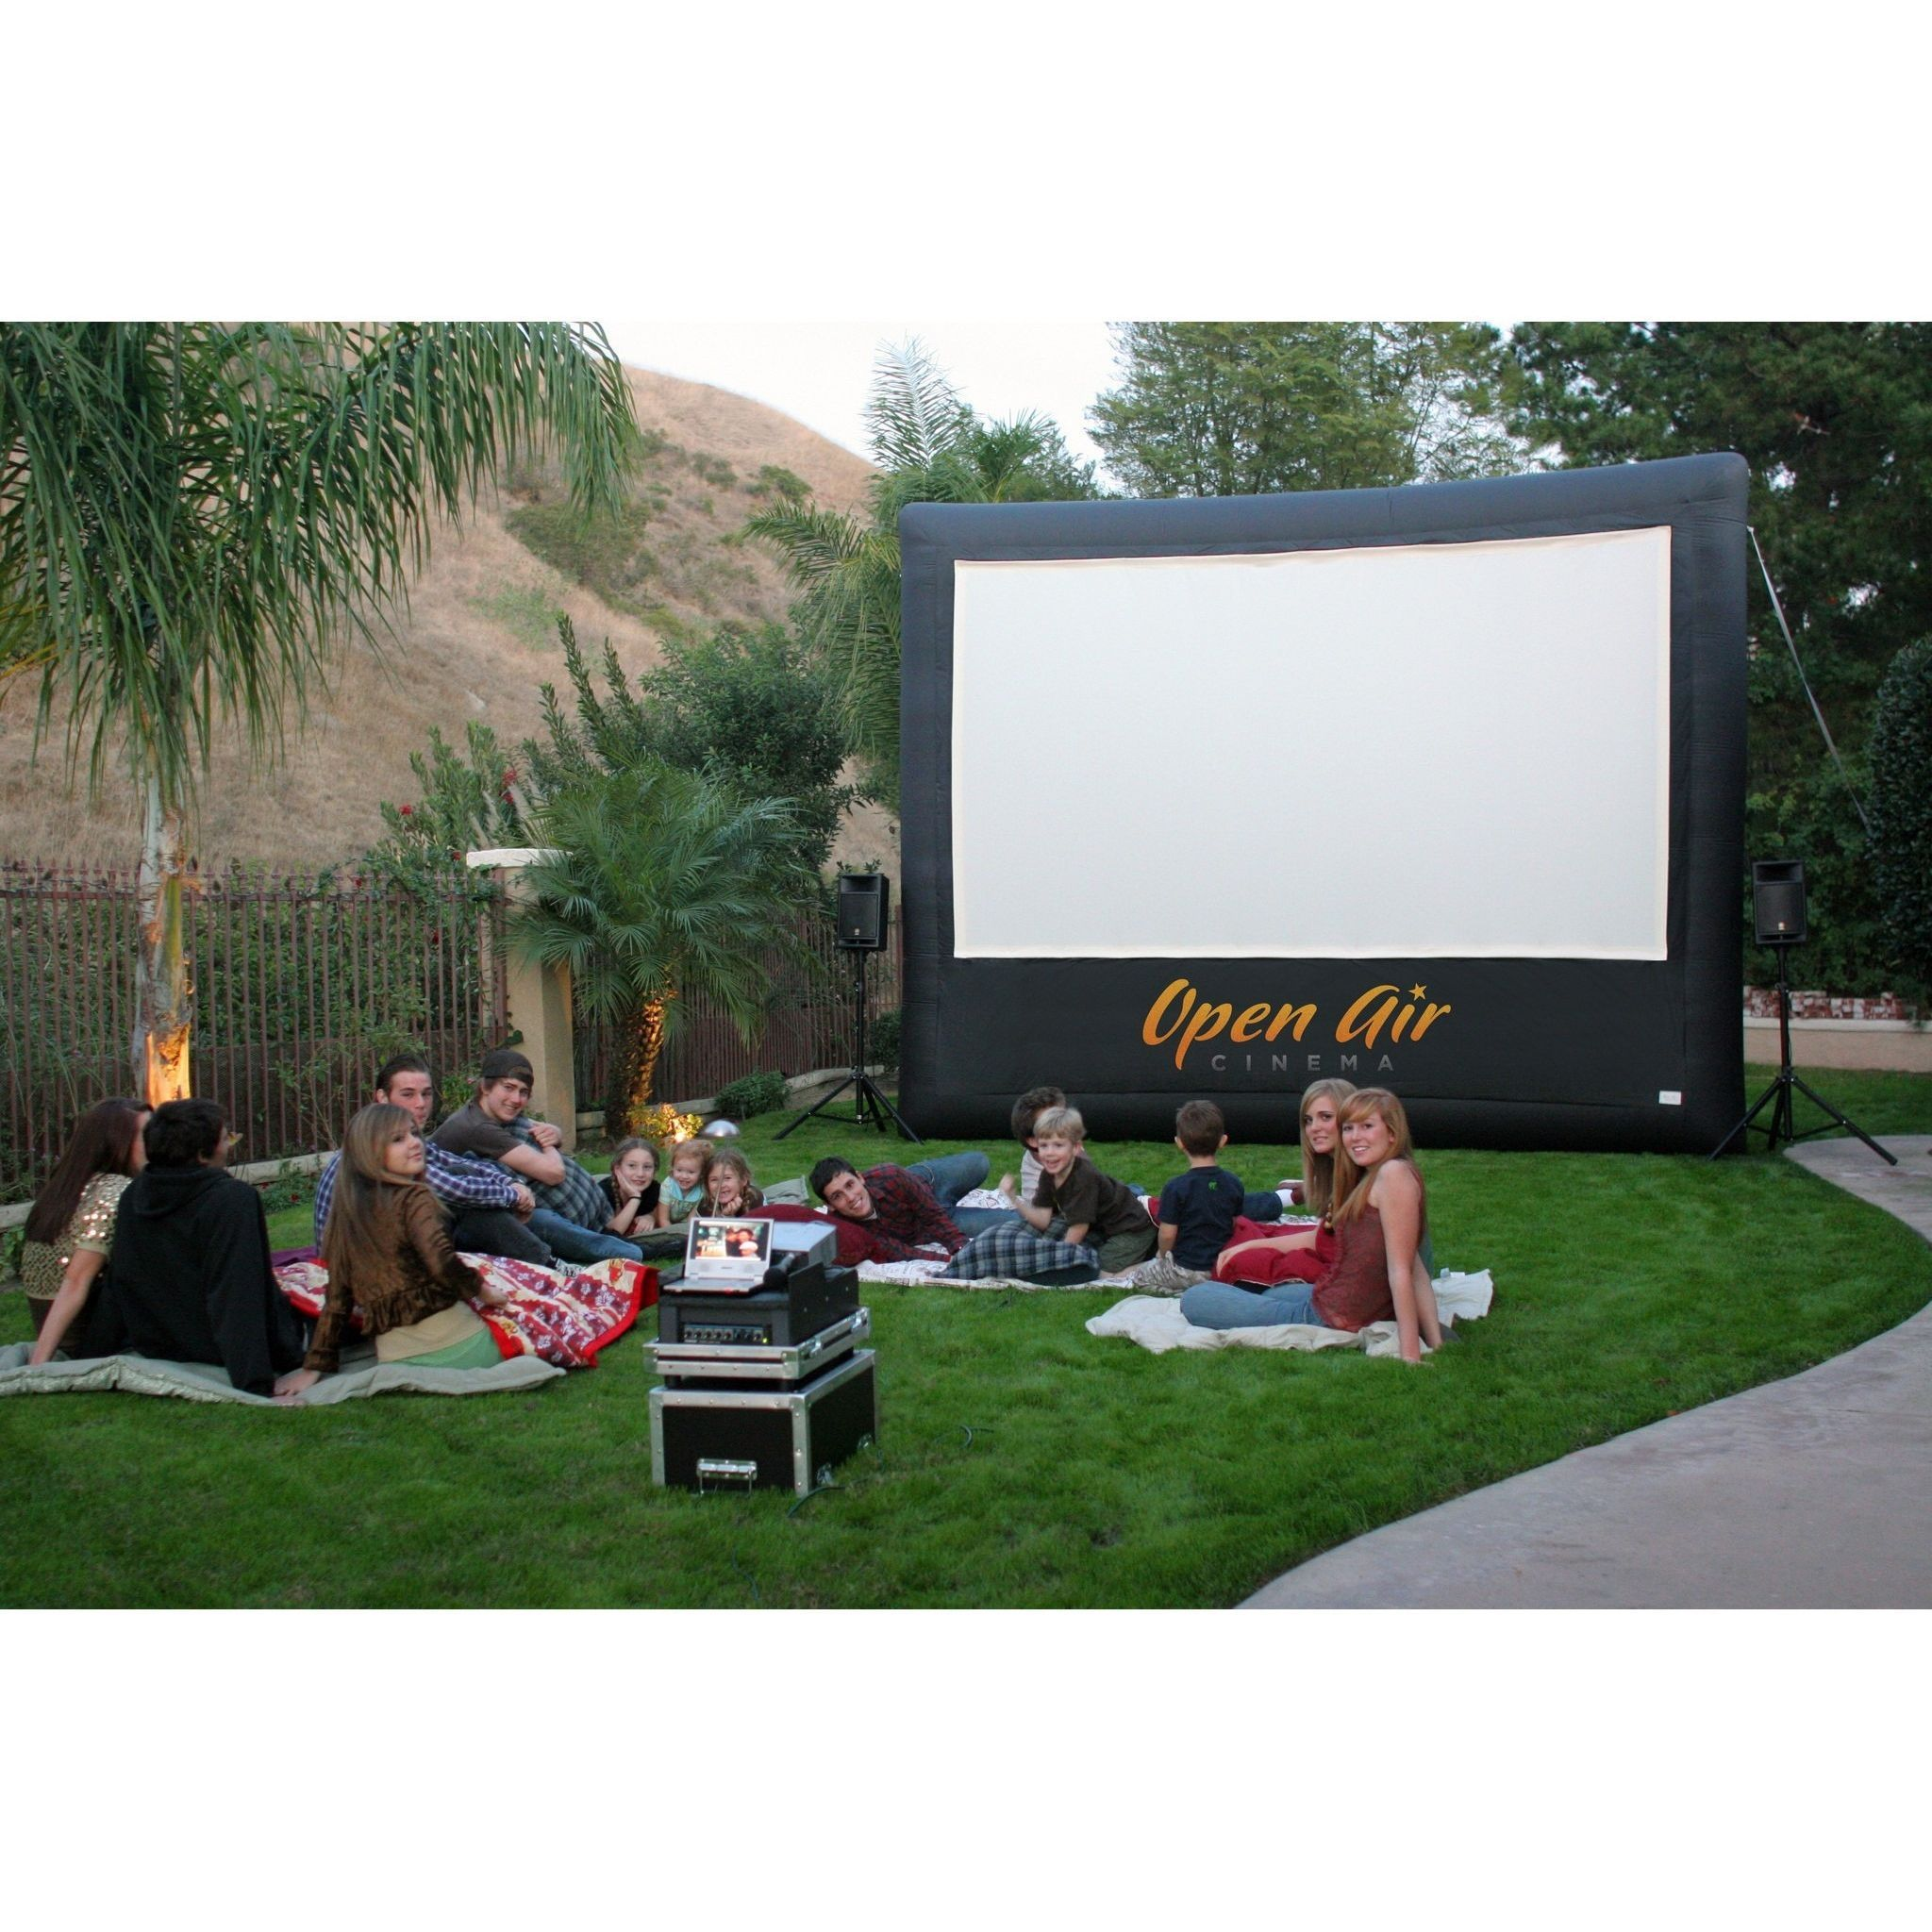 Open Air Cinema 12u0027 Pro Cinebox Outdoor Movie Theater System CBP 12